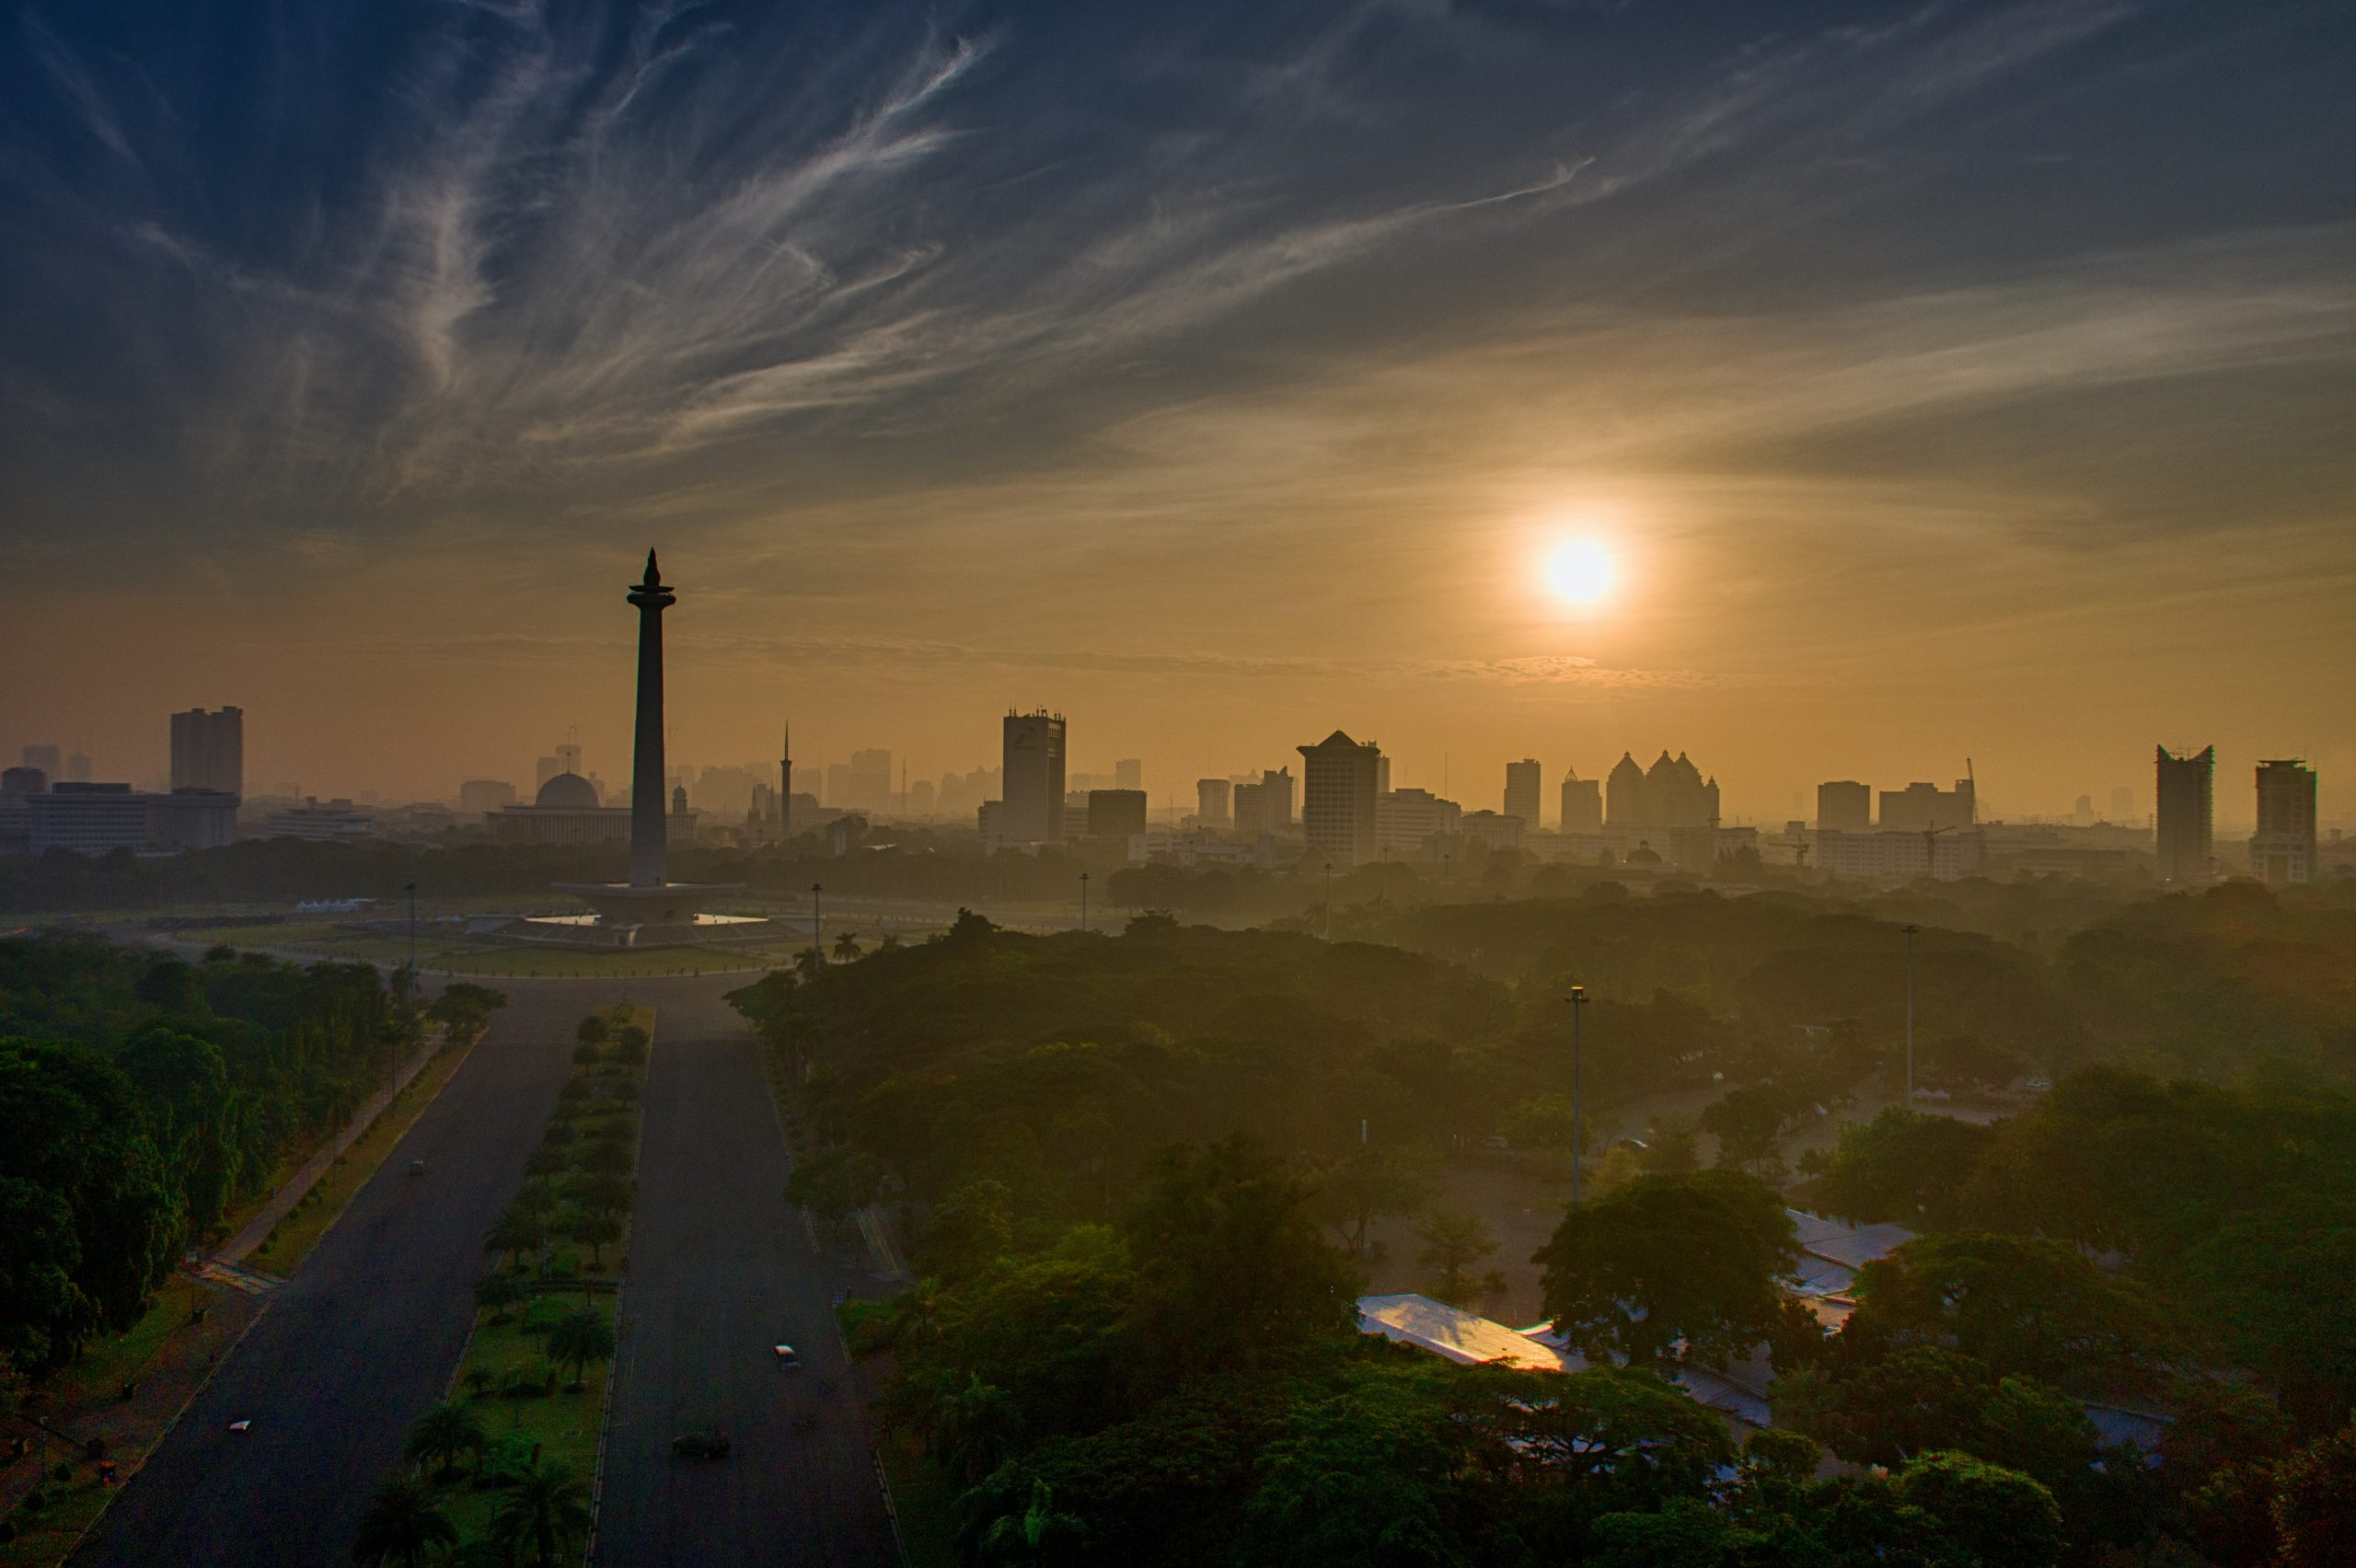 Jakarta, Indonesia (image courtesy of Tom Fisk)